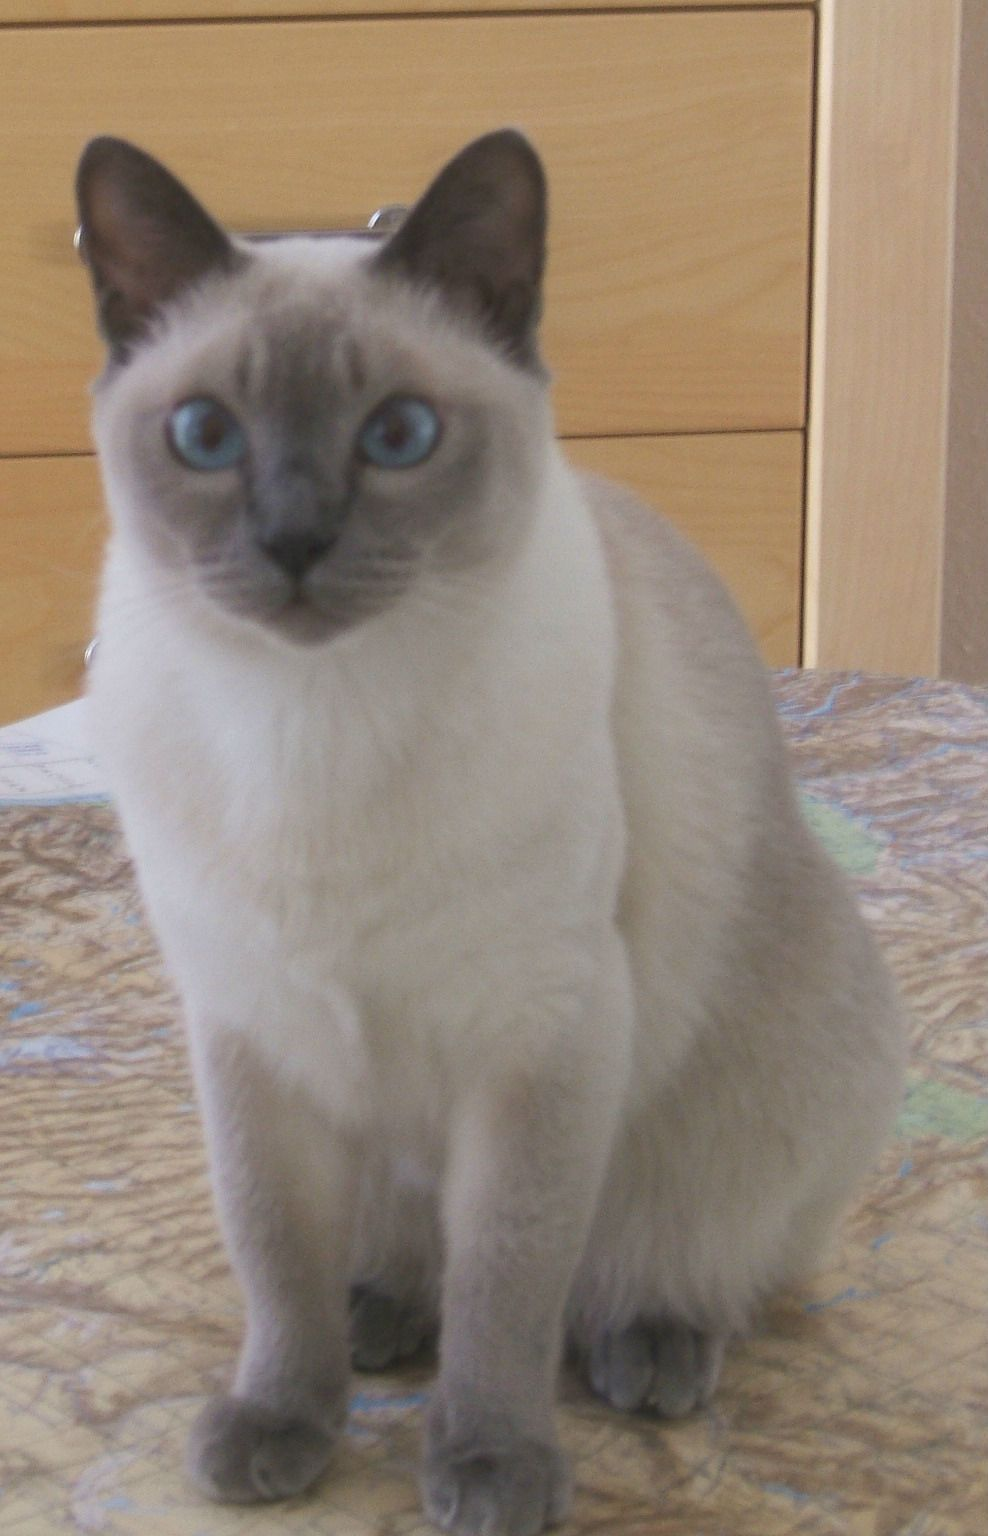 Meika Moo Blue Mink Tonkinese Female Born In San Diego County Was One Amazing Little Girl Tonkinese Cat Pretty Cats Cats And Kittens